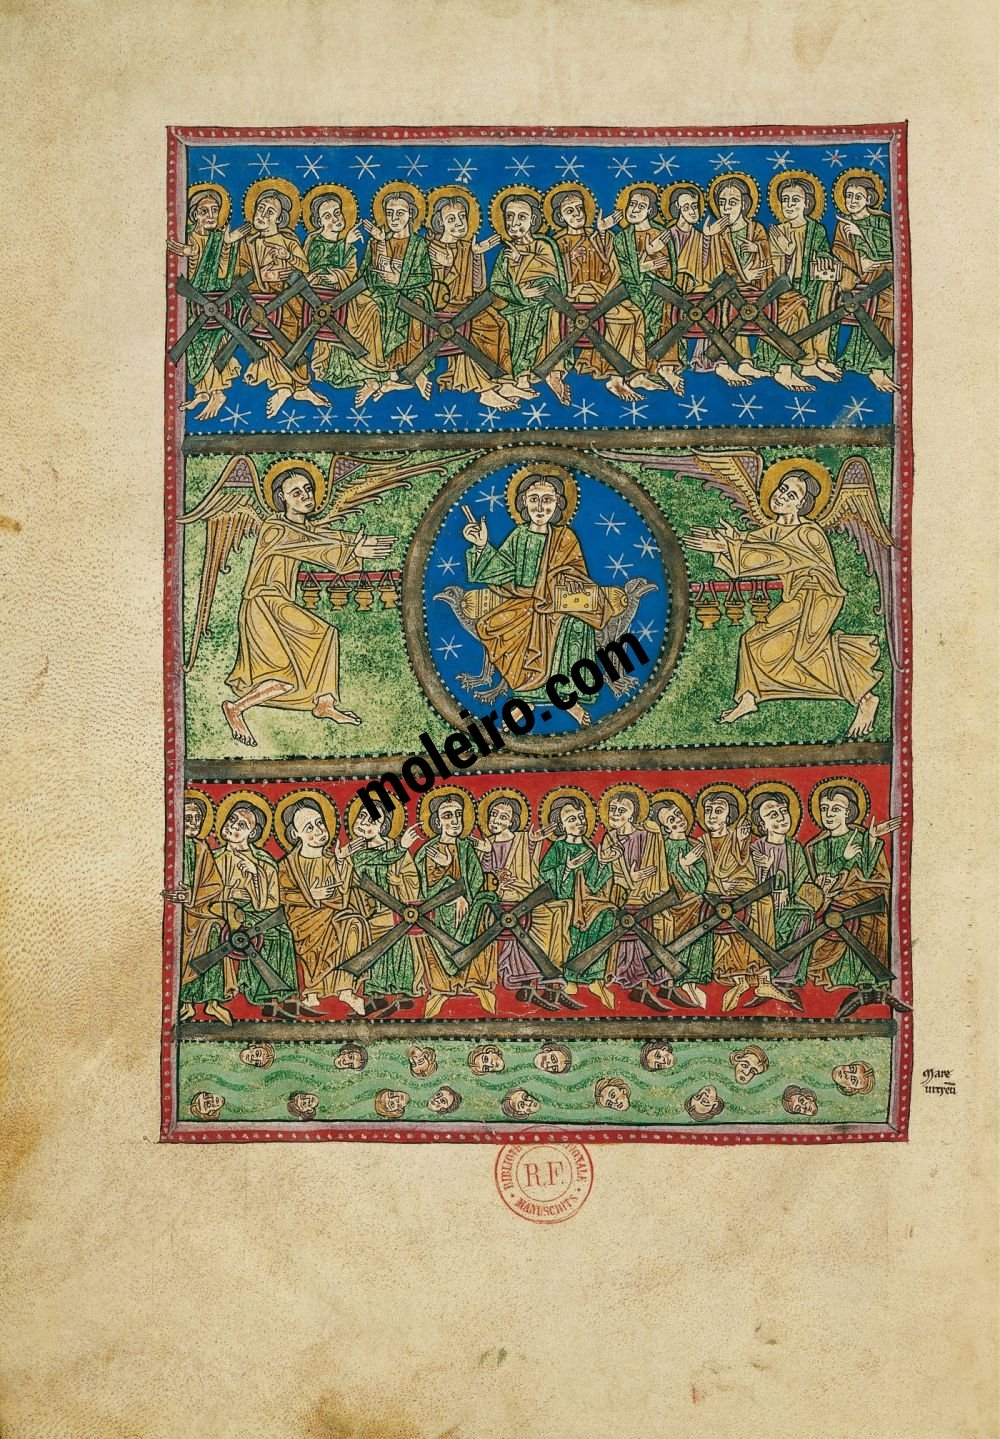 Arroyo Beatus f. 53v, Vision of God in the Sky